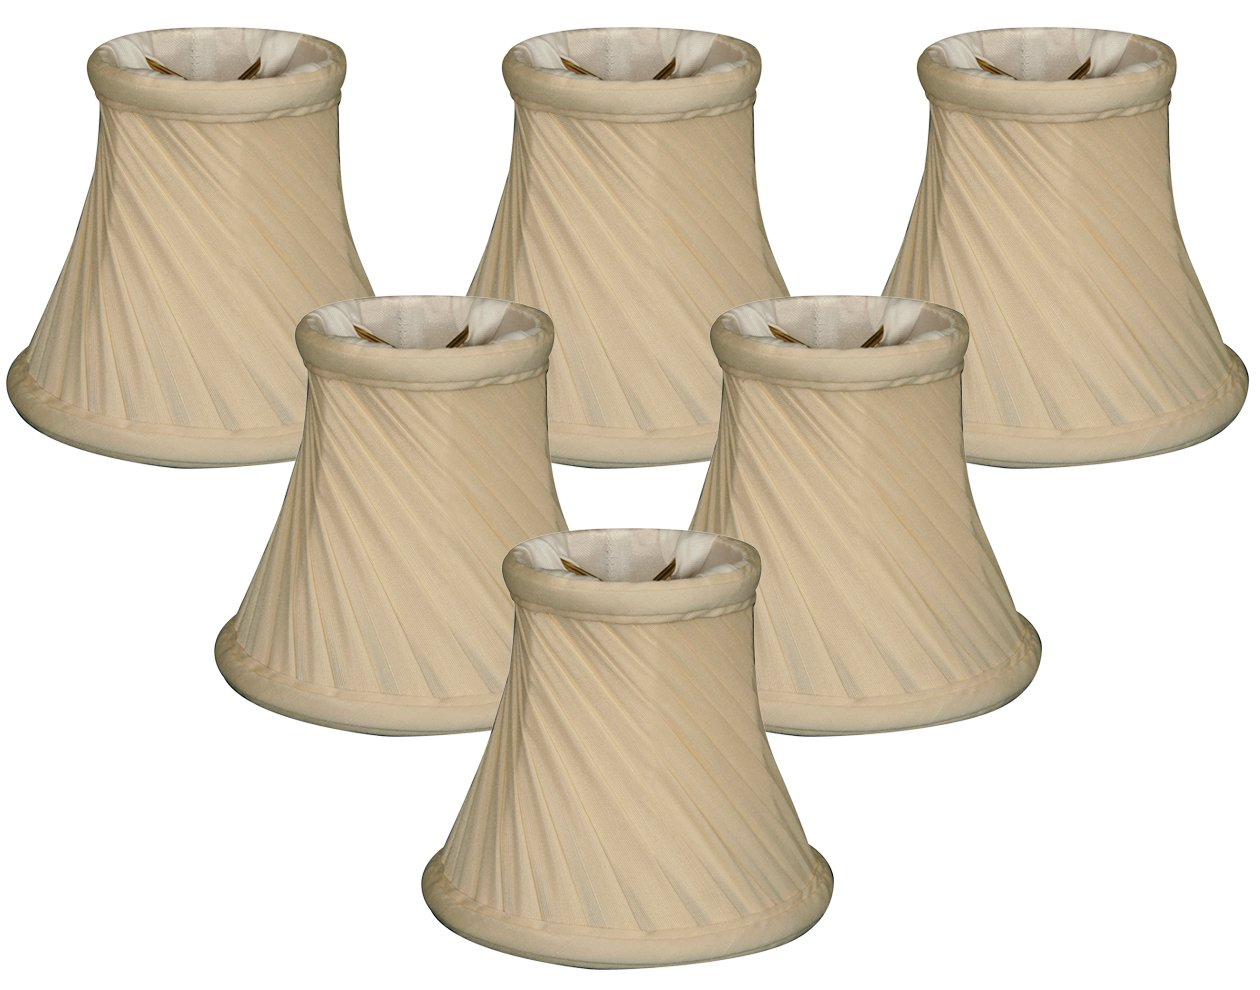 Royal Designs 5'' Twisted Bell Chandelier Lamp Shade, Eggshell, Set of 6, 3 x 5 x 4.5 (CS-716EG-6)